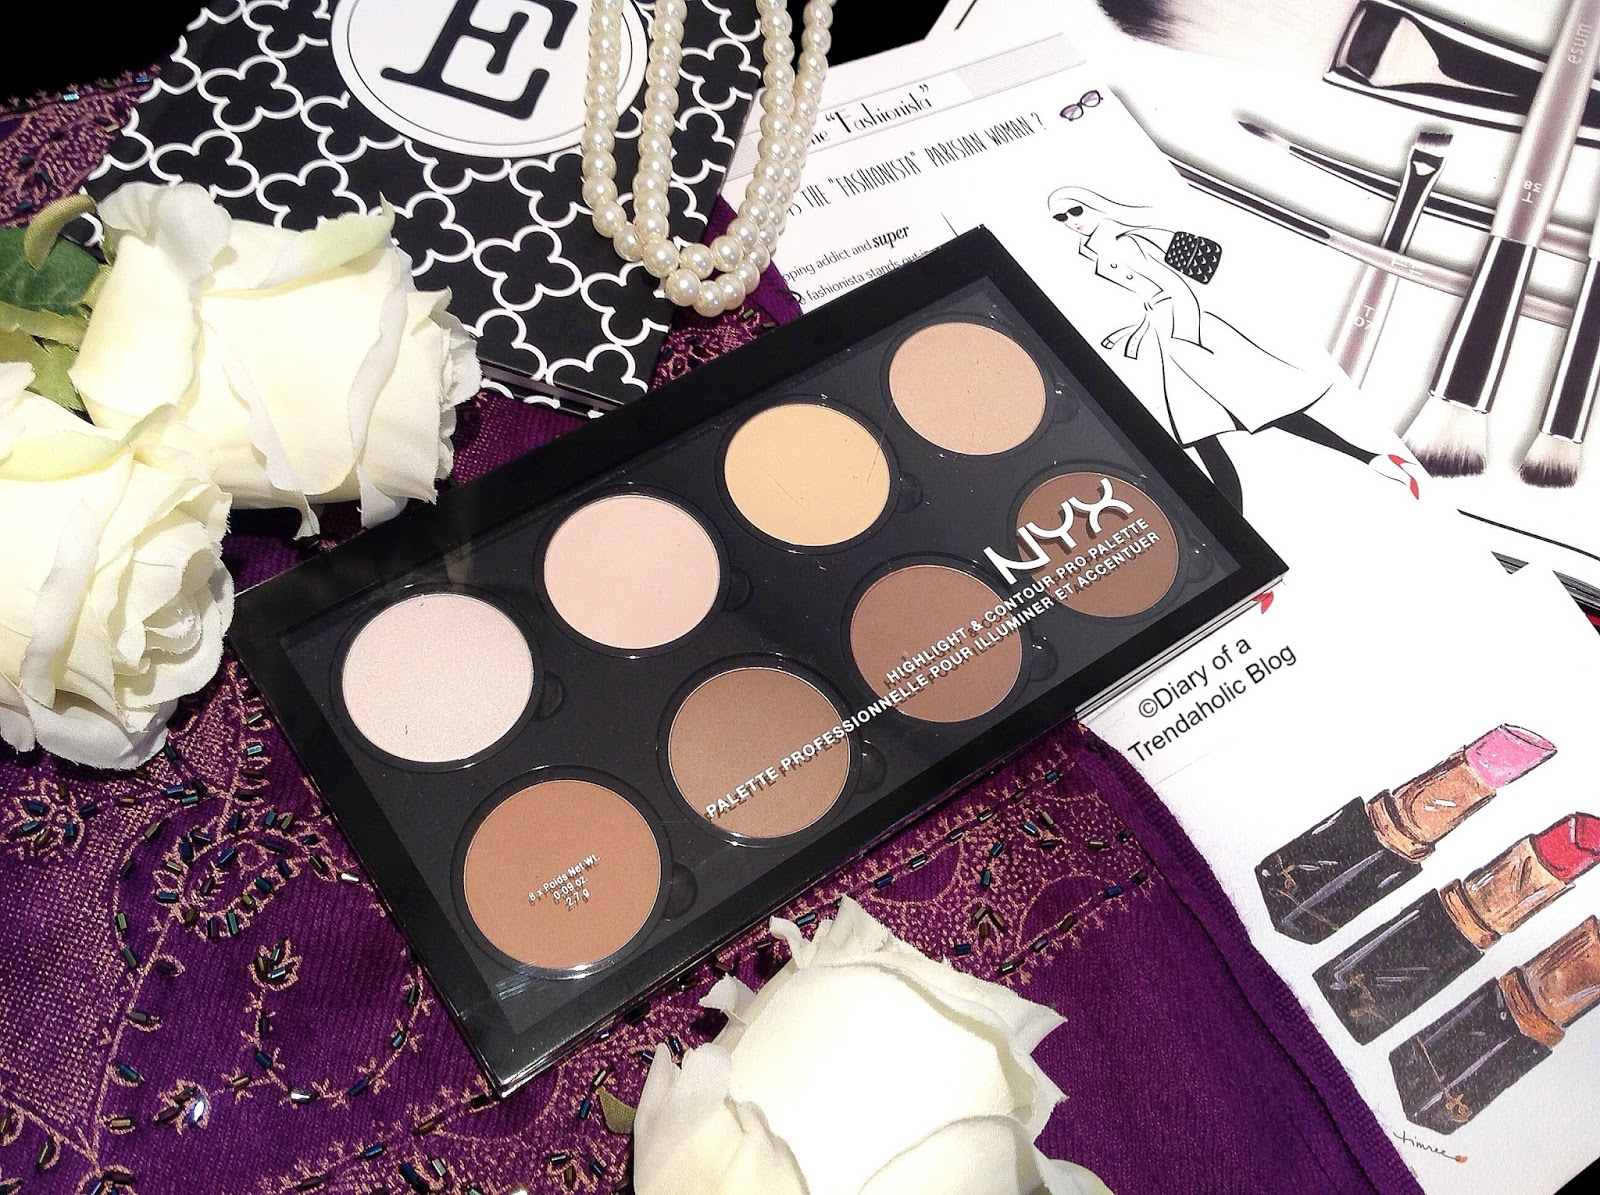 Face contouring always trendy! How to do it correctly with Highlight & Contour Pro Palette from NYX Cosmetics?